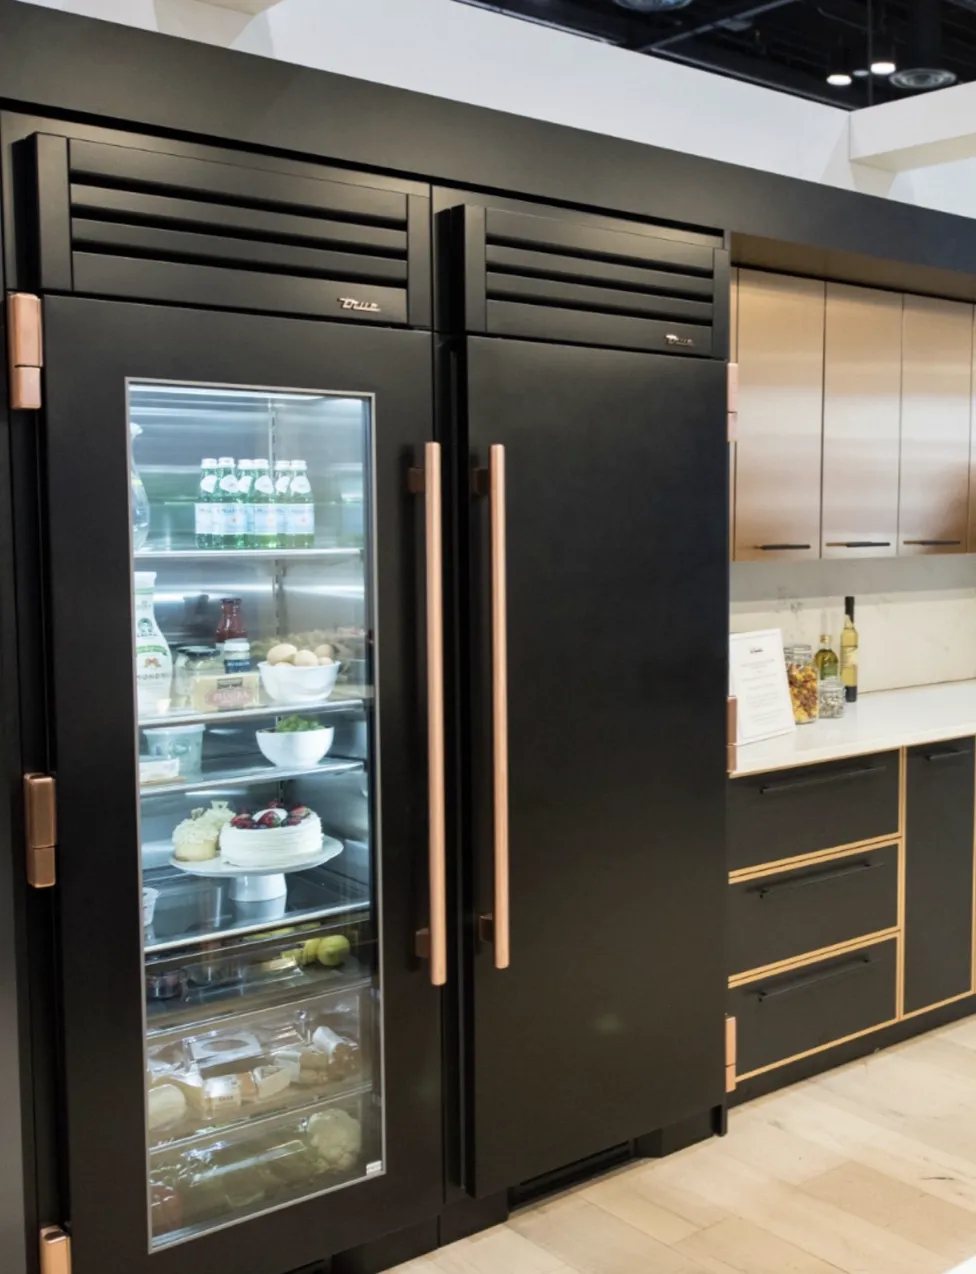 The Biggest Kitchen And Bath Trends For 2020 And 2021 Amanda Gates Feng Shui In 2020 Kitchen And Bath Kitchen Design Trends Kitchen Trends